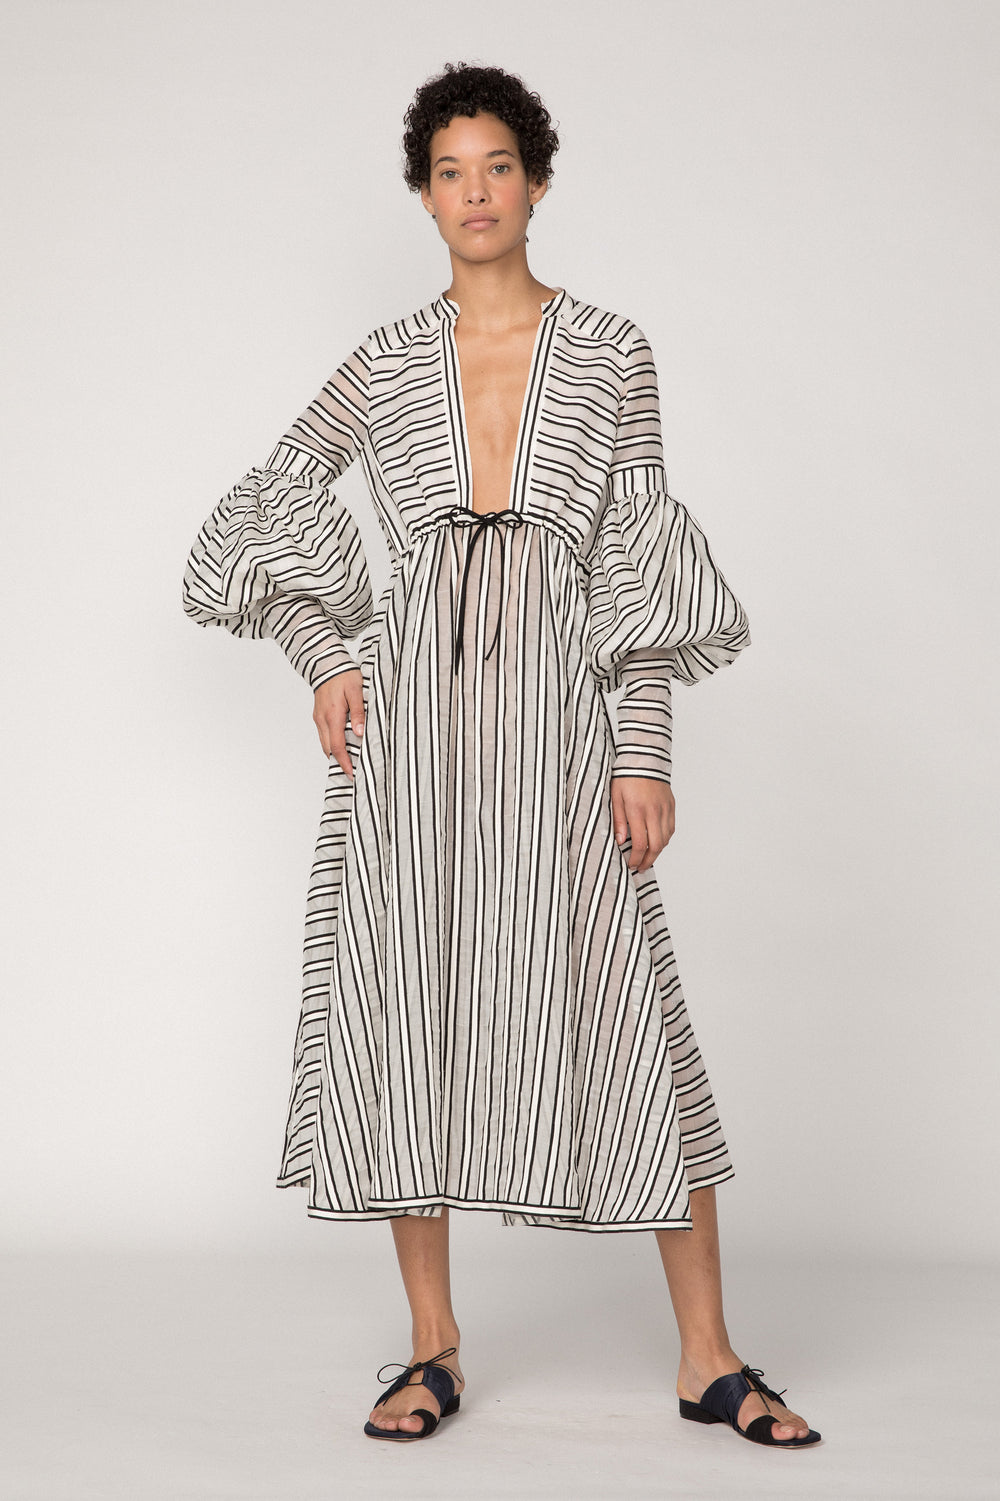 Rosie Assoulin Pre-Fall 2019 Lantern Sleeve Dress. Long sleeve midi dress. Plunging neckline. Hook and eye closures. Voluminous sleeves. Black stripe. 77% Virgin Wool, 23% Silk. Sizes 0 - 14.